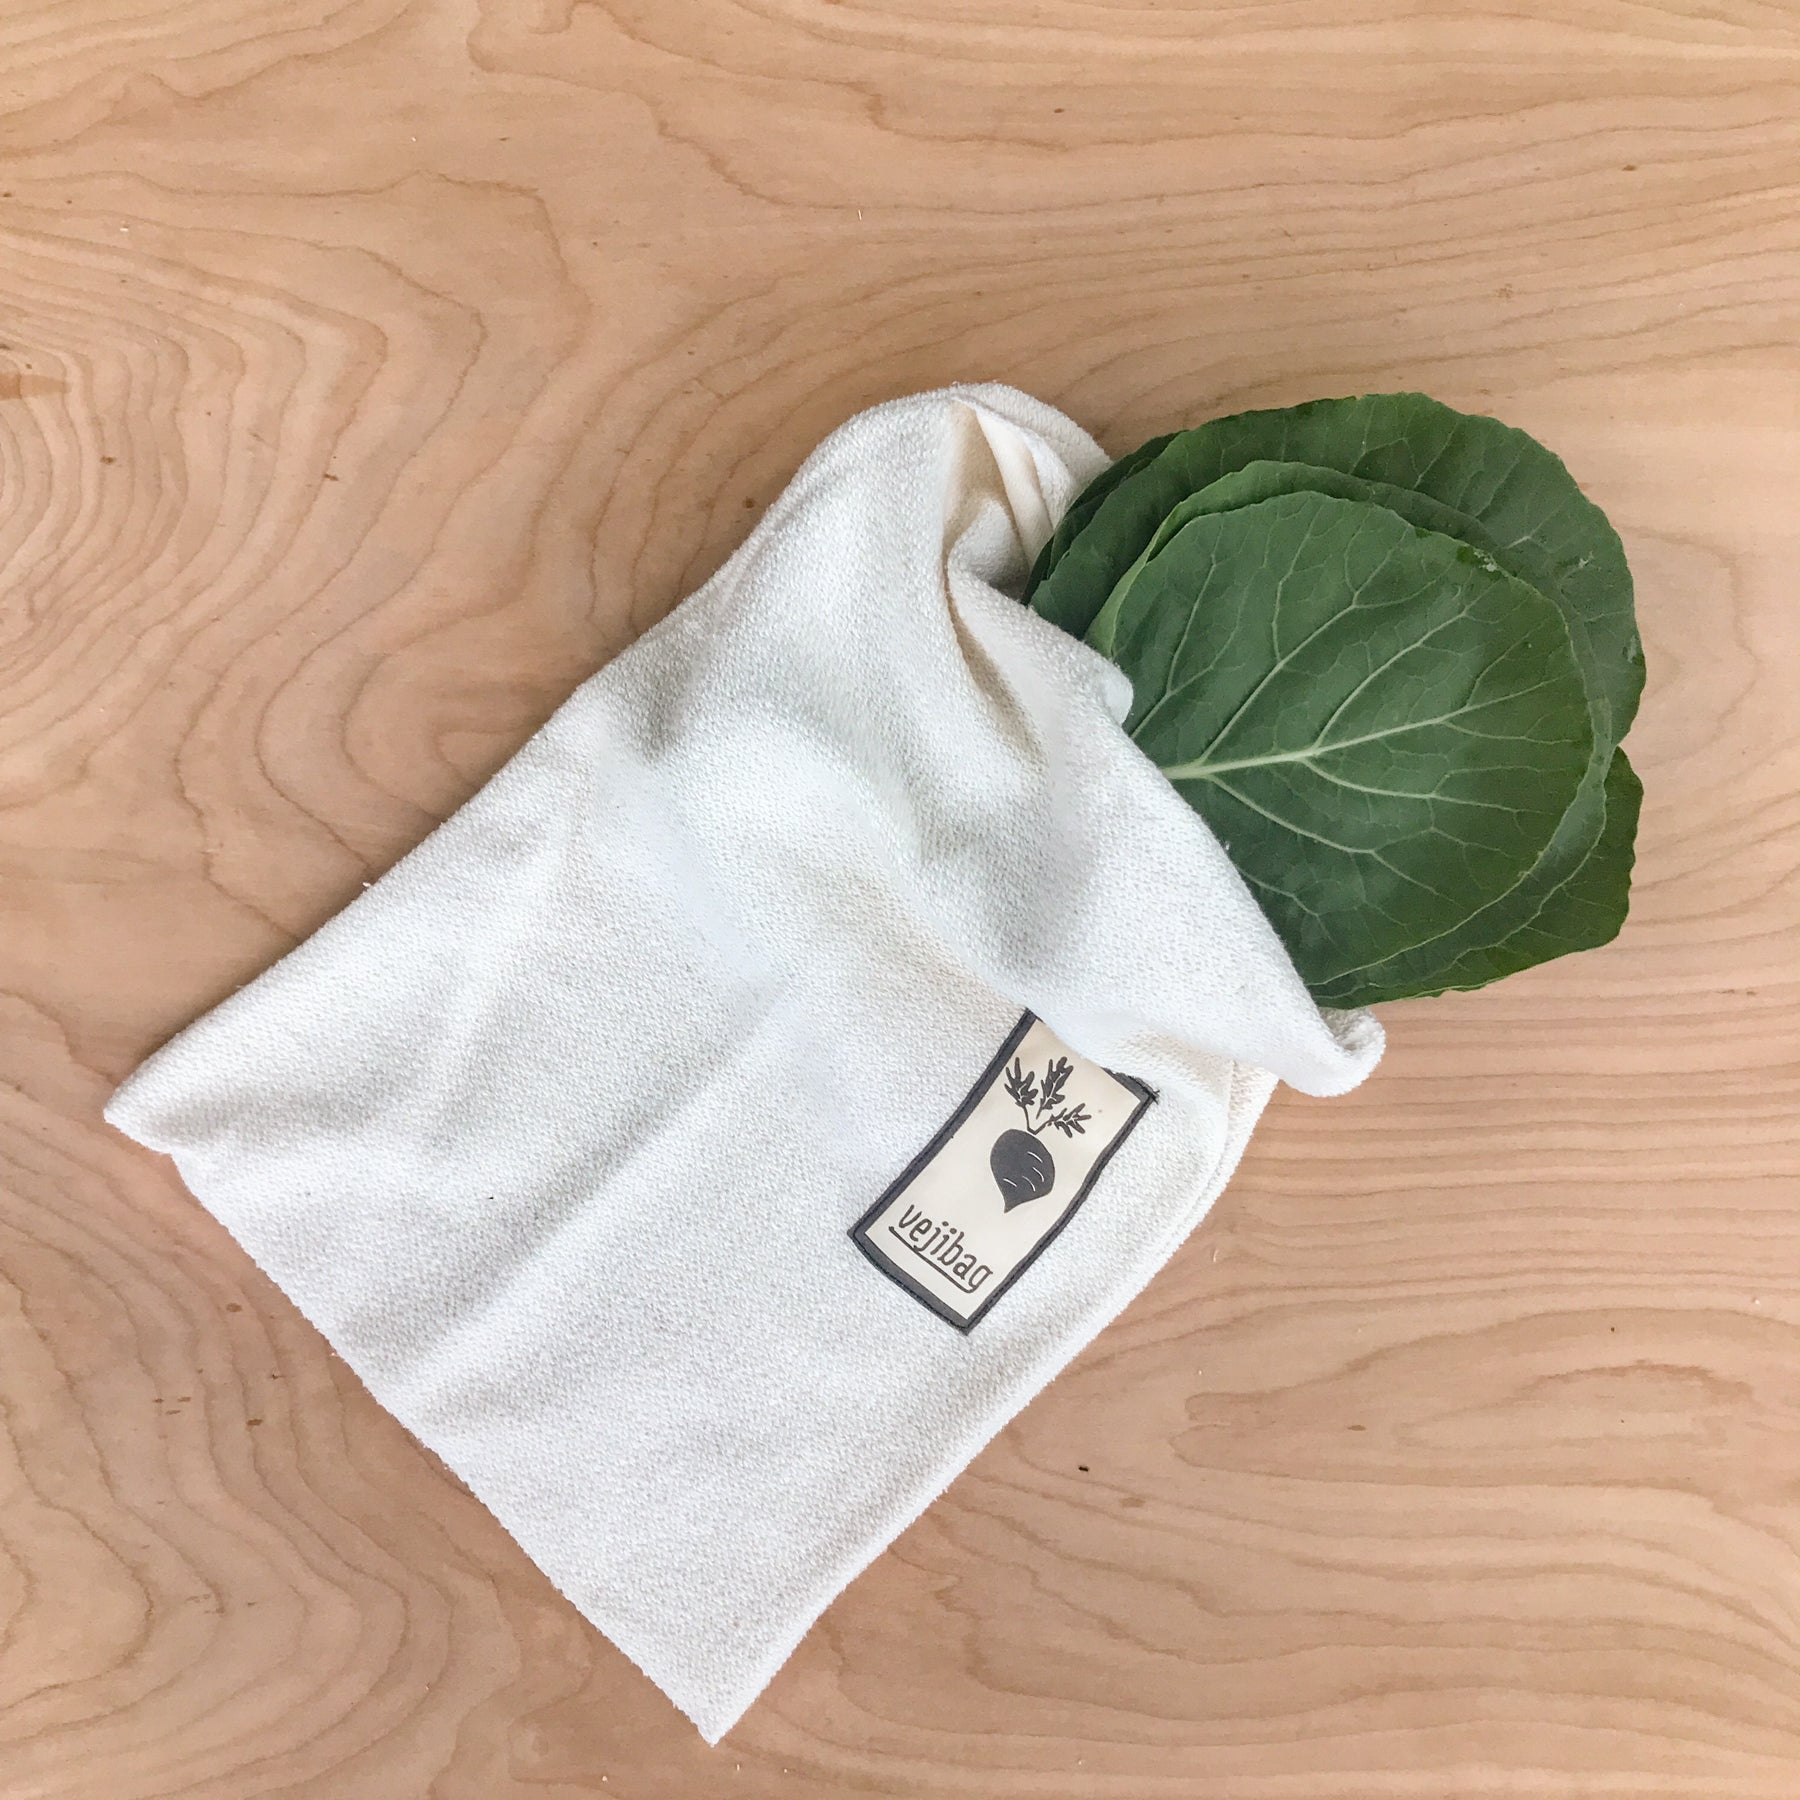 veji plastic free produce bag zero waste in small, medium, and large